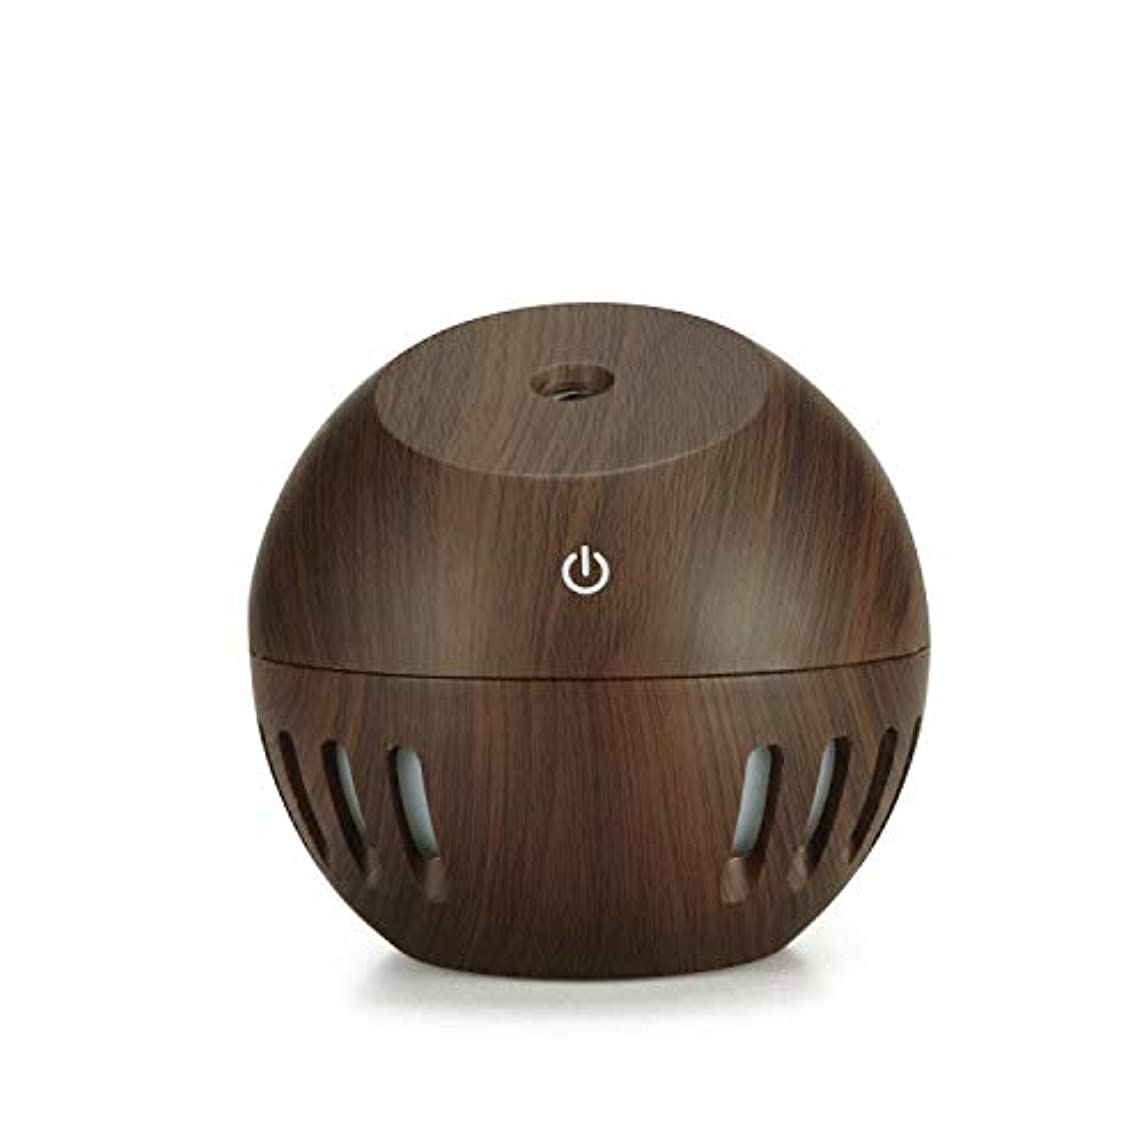 ジュラシックパーク単なる下130ml Essential Oils Diffuser Electric Cool Mist Aroma Diffuser For Home, Yoga, Bedroom